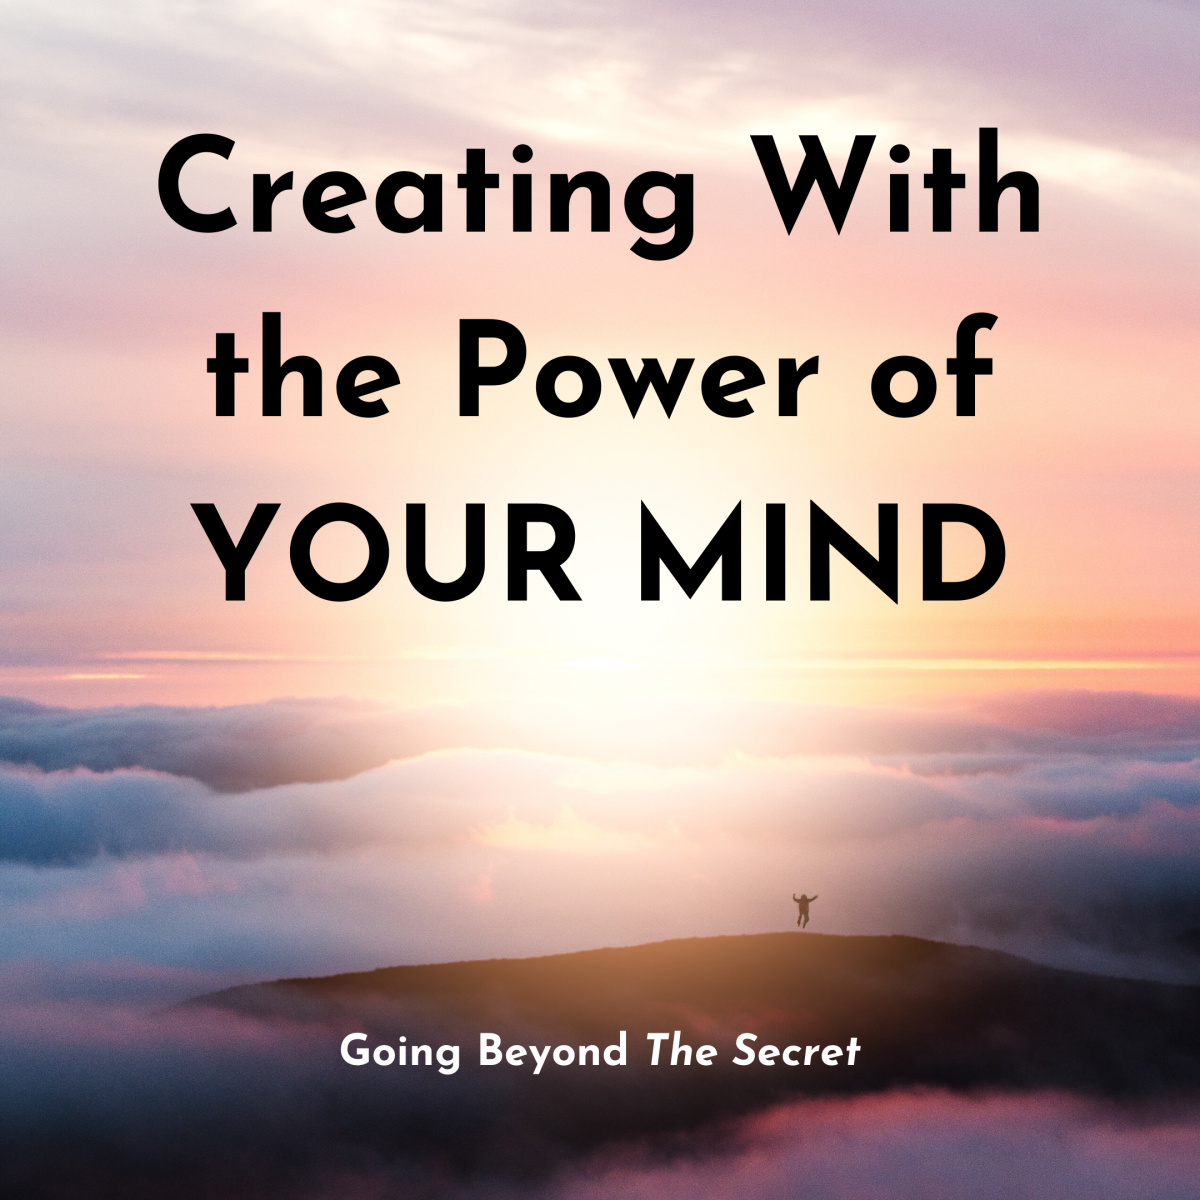 Learn more about the power of the mind and how to embark on an authentic creation process.